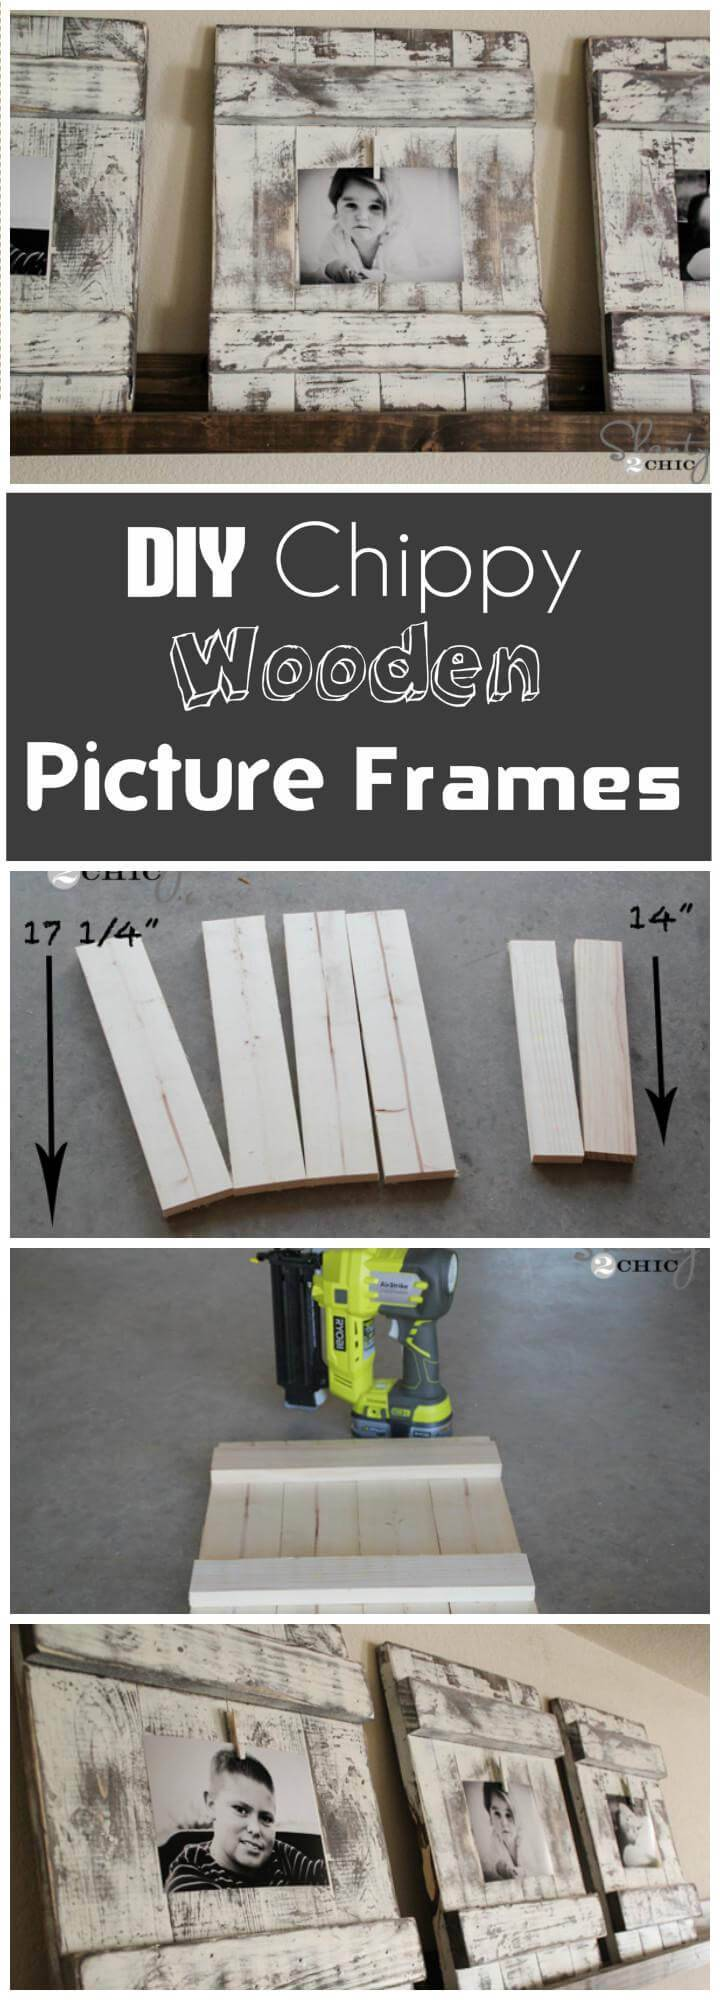 handcrafted chippy wooden picture frame